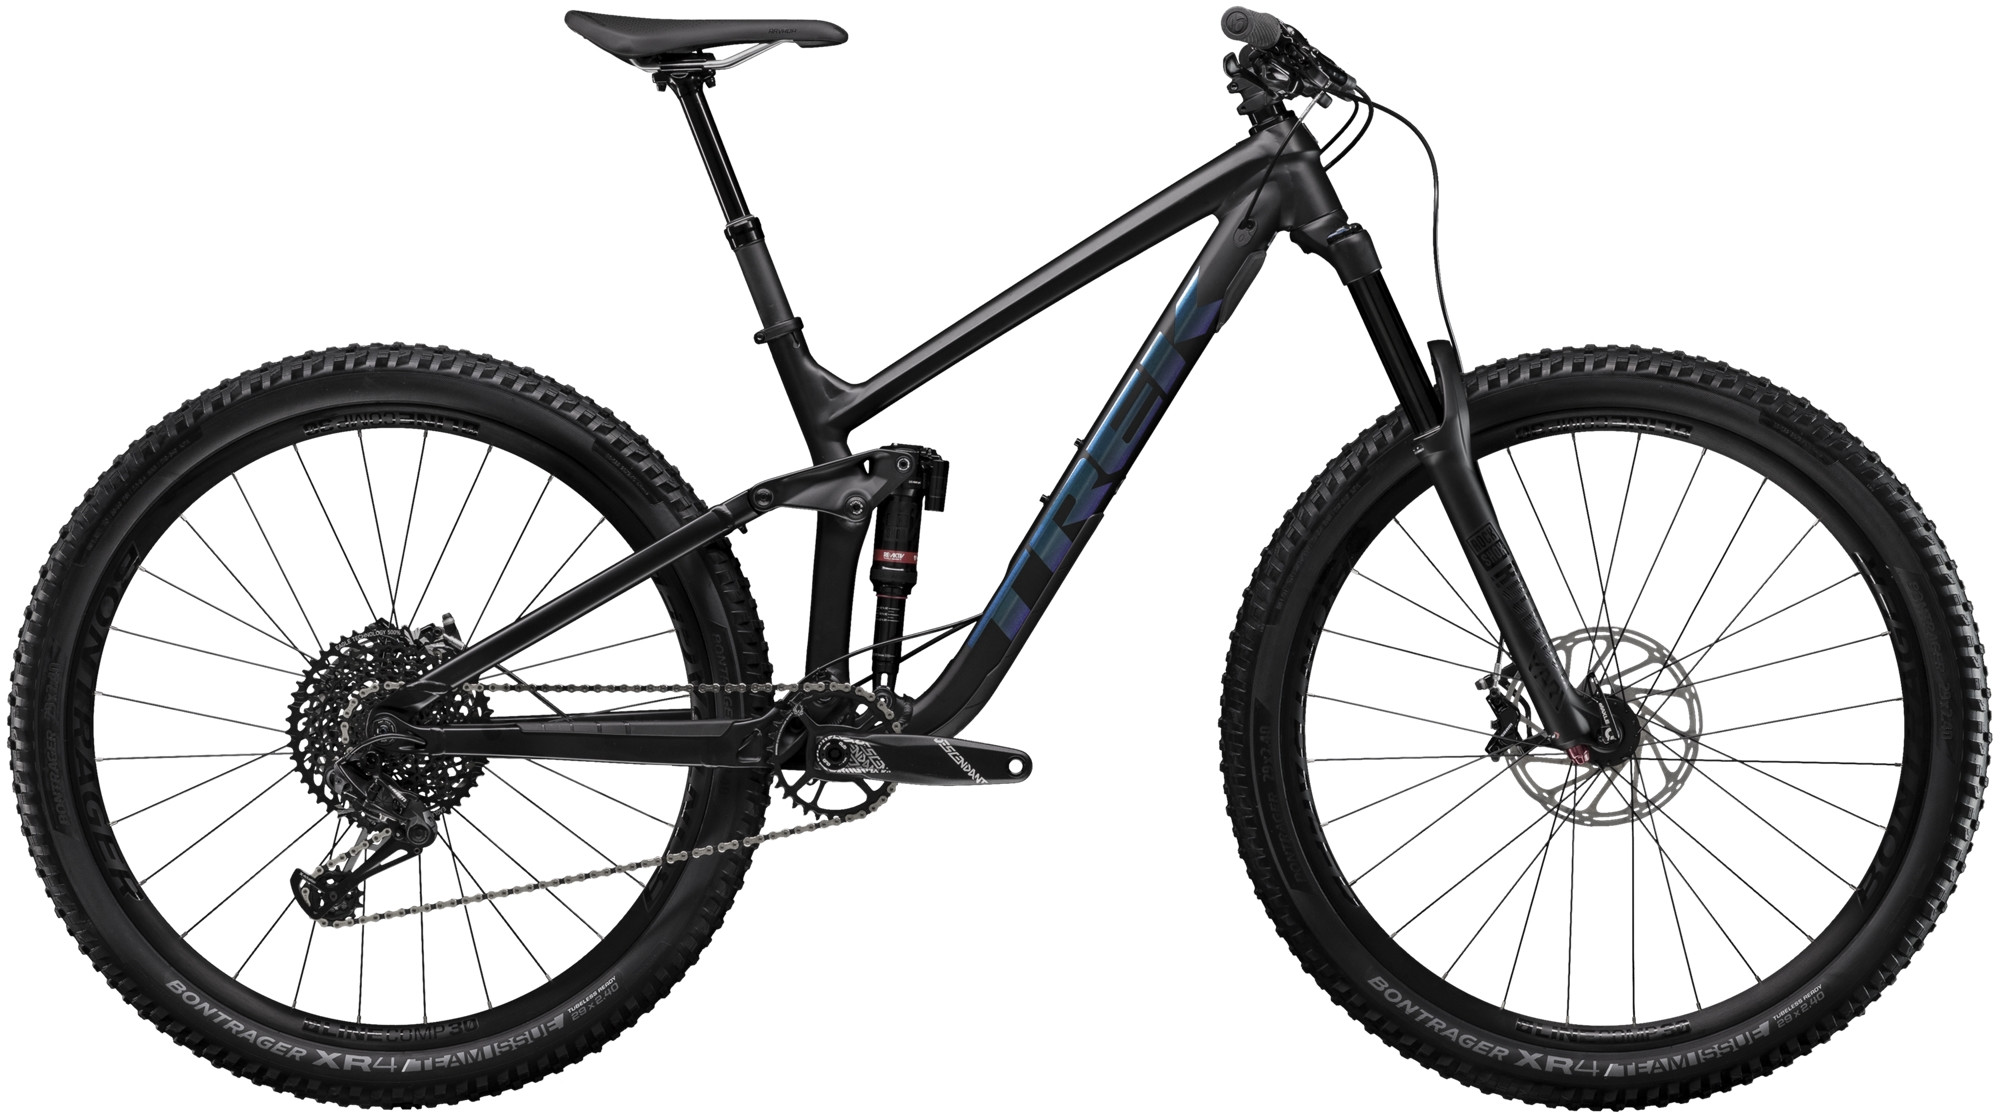 2020 Trek Slash 8 Full Suspension Mountain Bikes